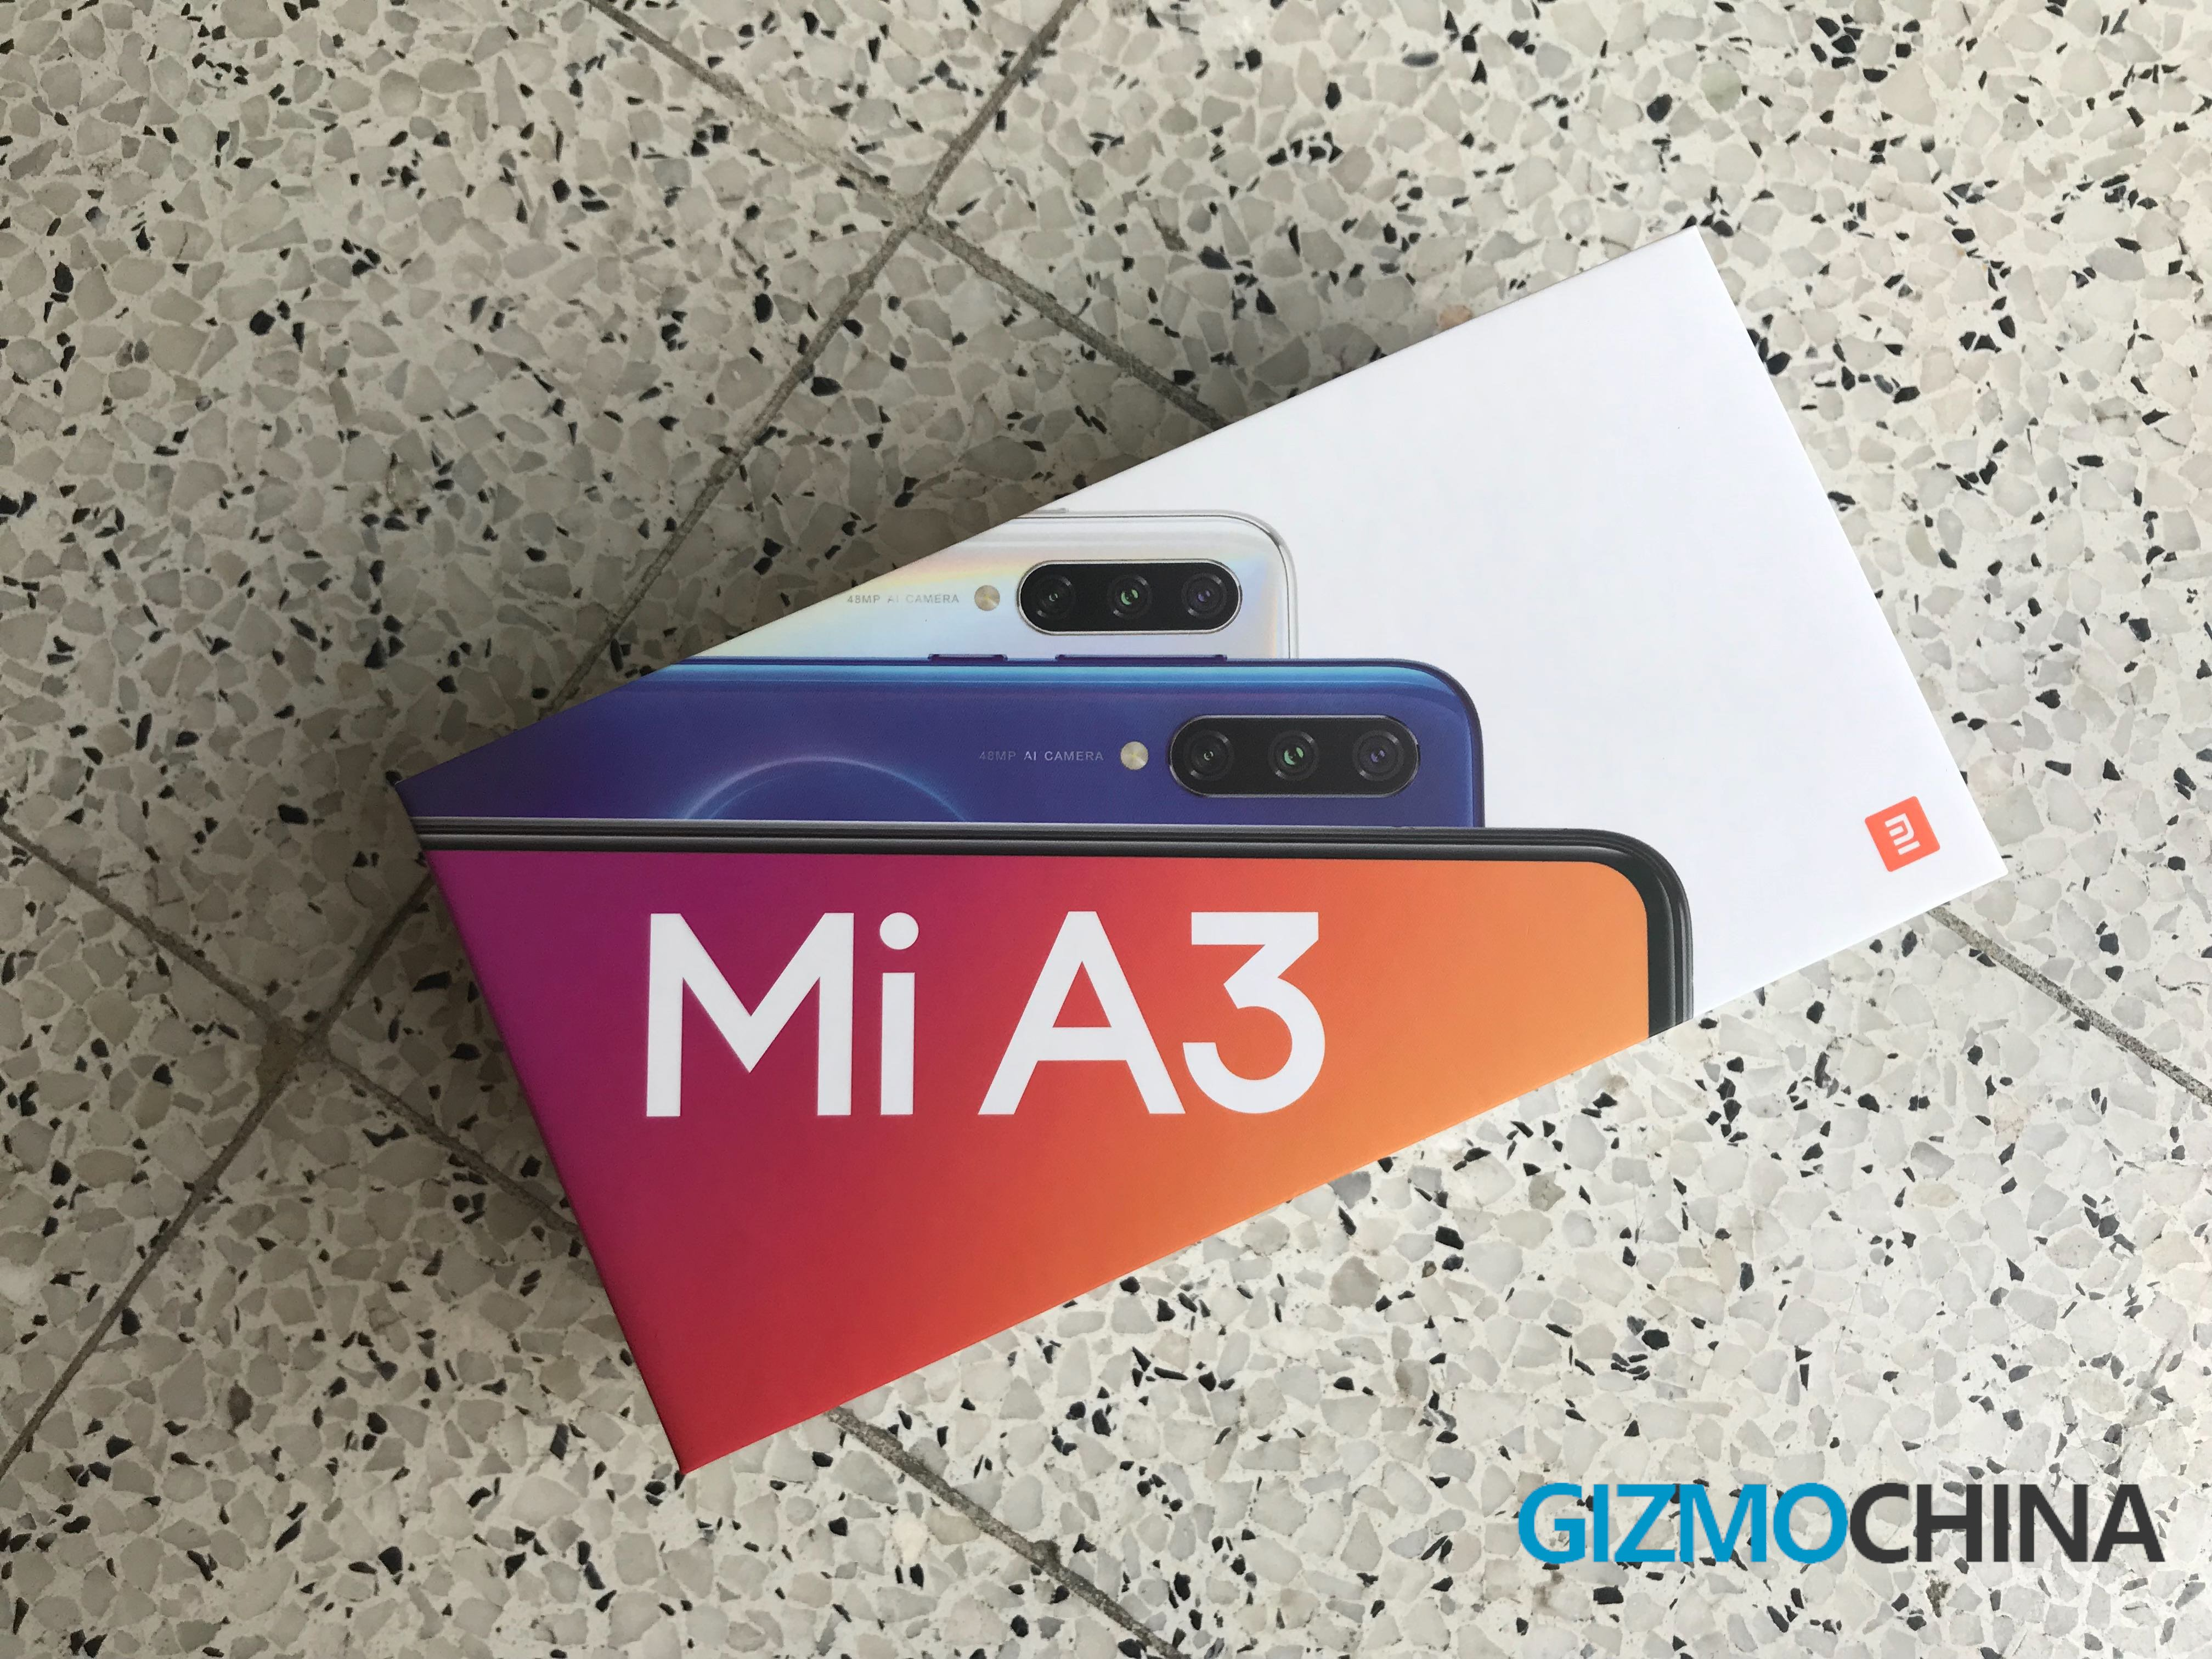 Mi-A3-hands-on-box-01